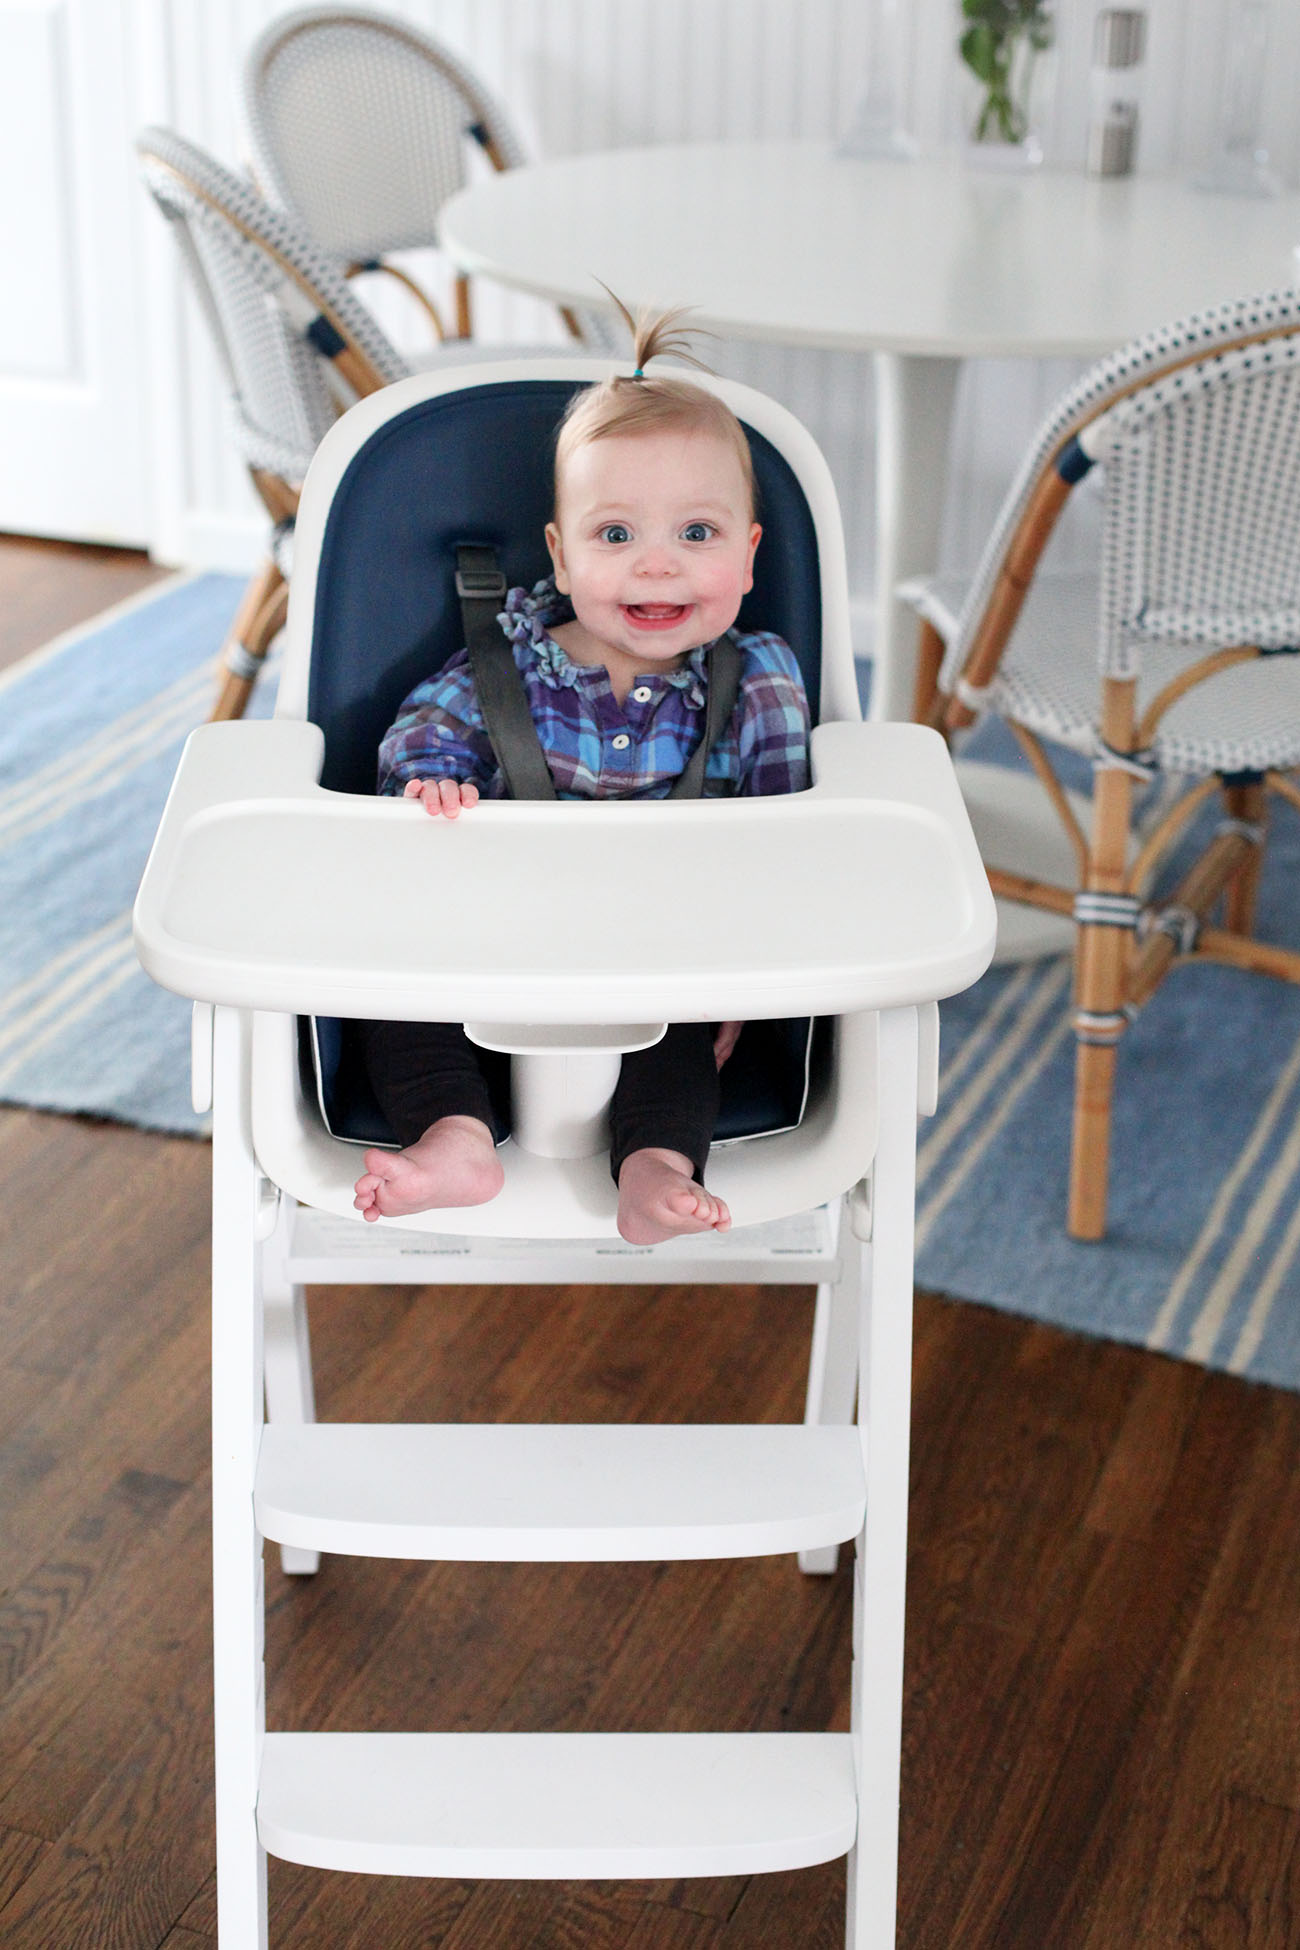 Enjoyable Oxo Tot Sprout High Chair Review Beatyapartments Chair Design Images Beatyapartmentscom